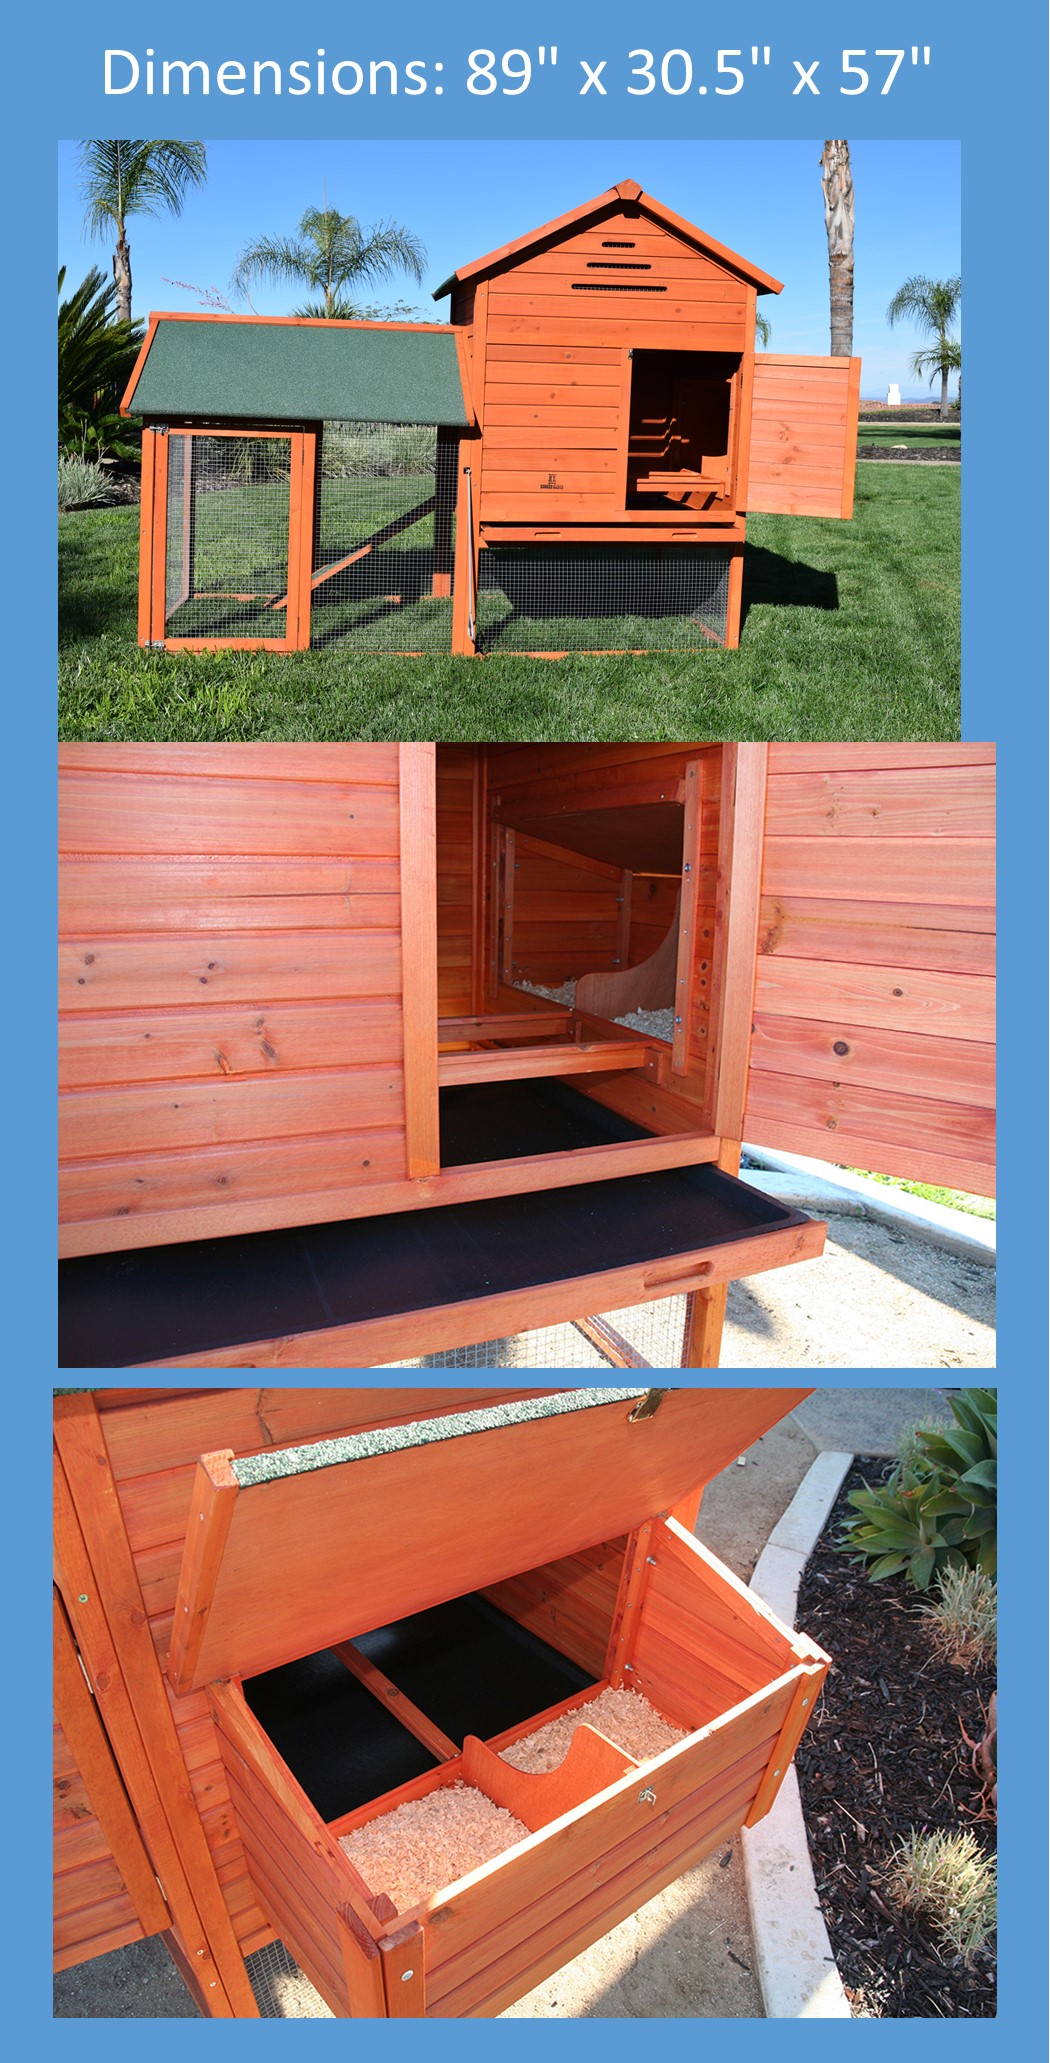 rugged-ranch-chicken-coop-dimensions-89-in-x-30.5-in-x-57-in-806216-upc-089555400138.jpg